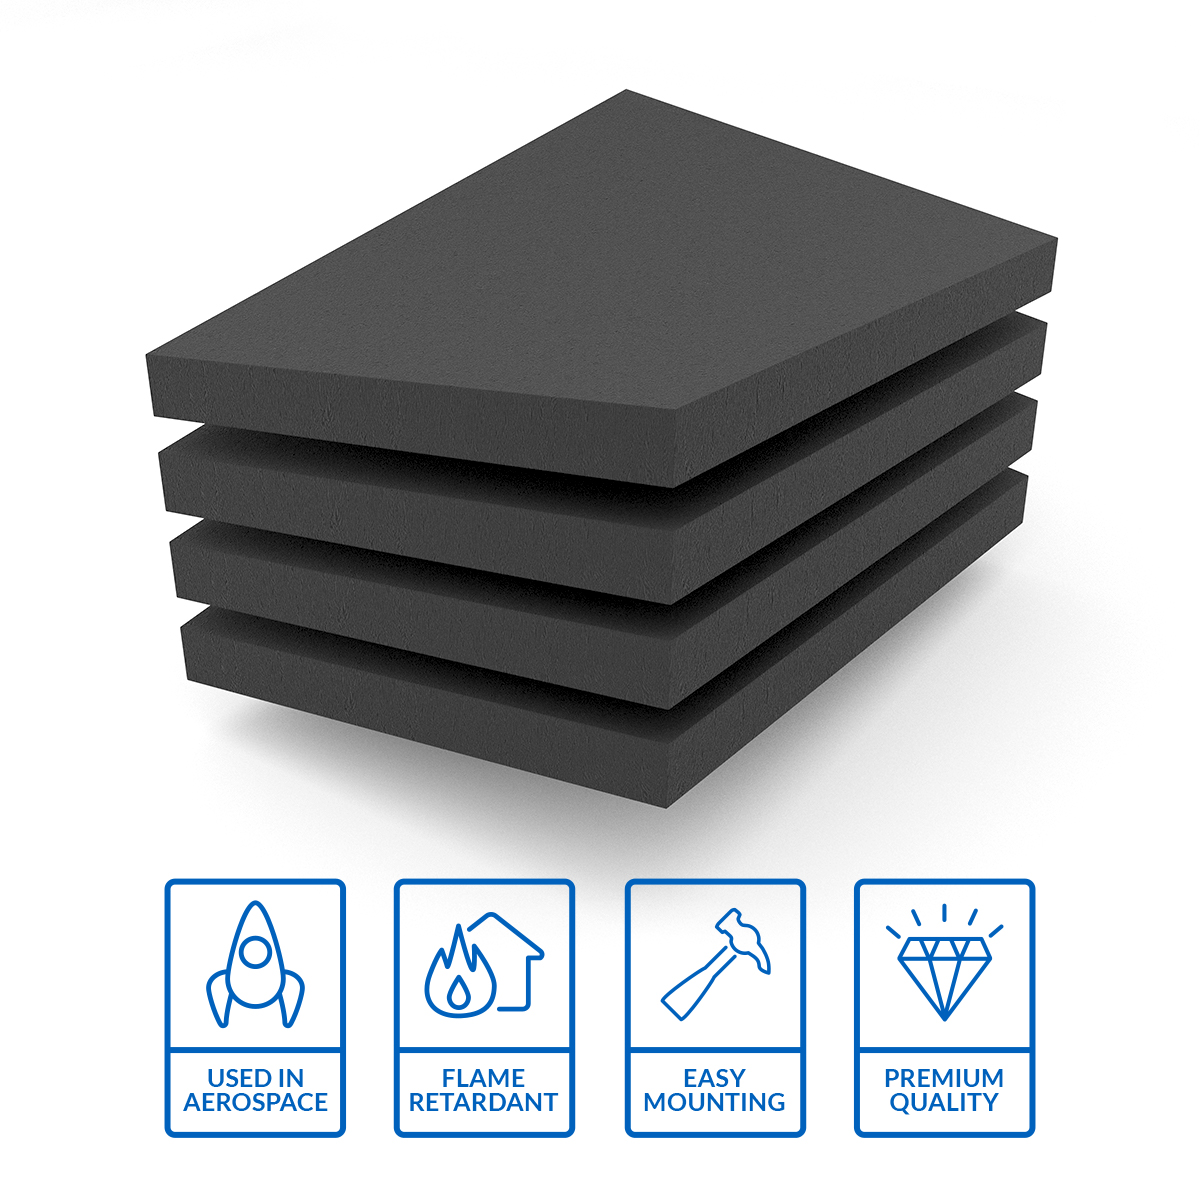 Image of Acoustic Foam sheets